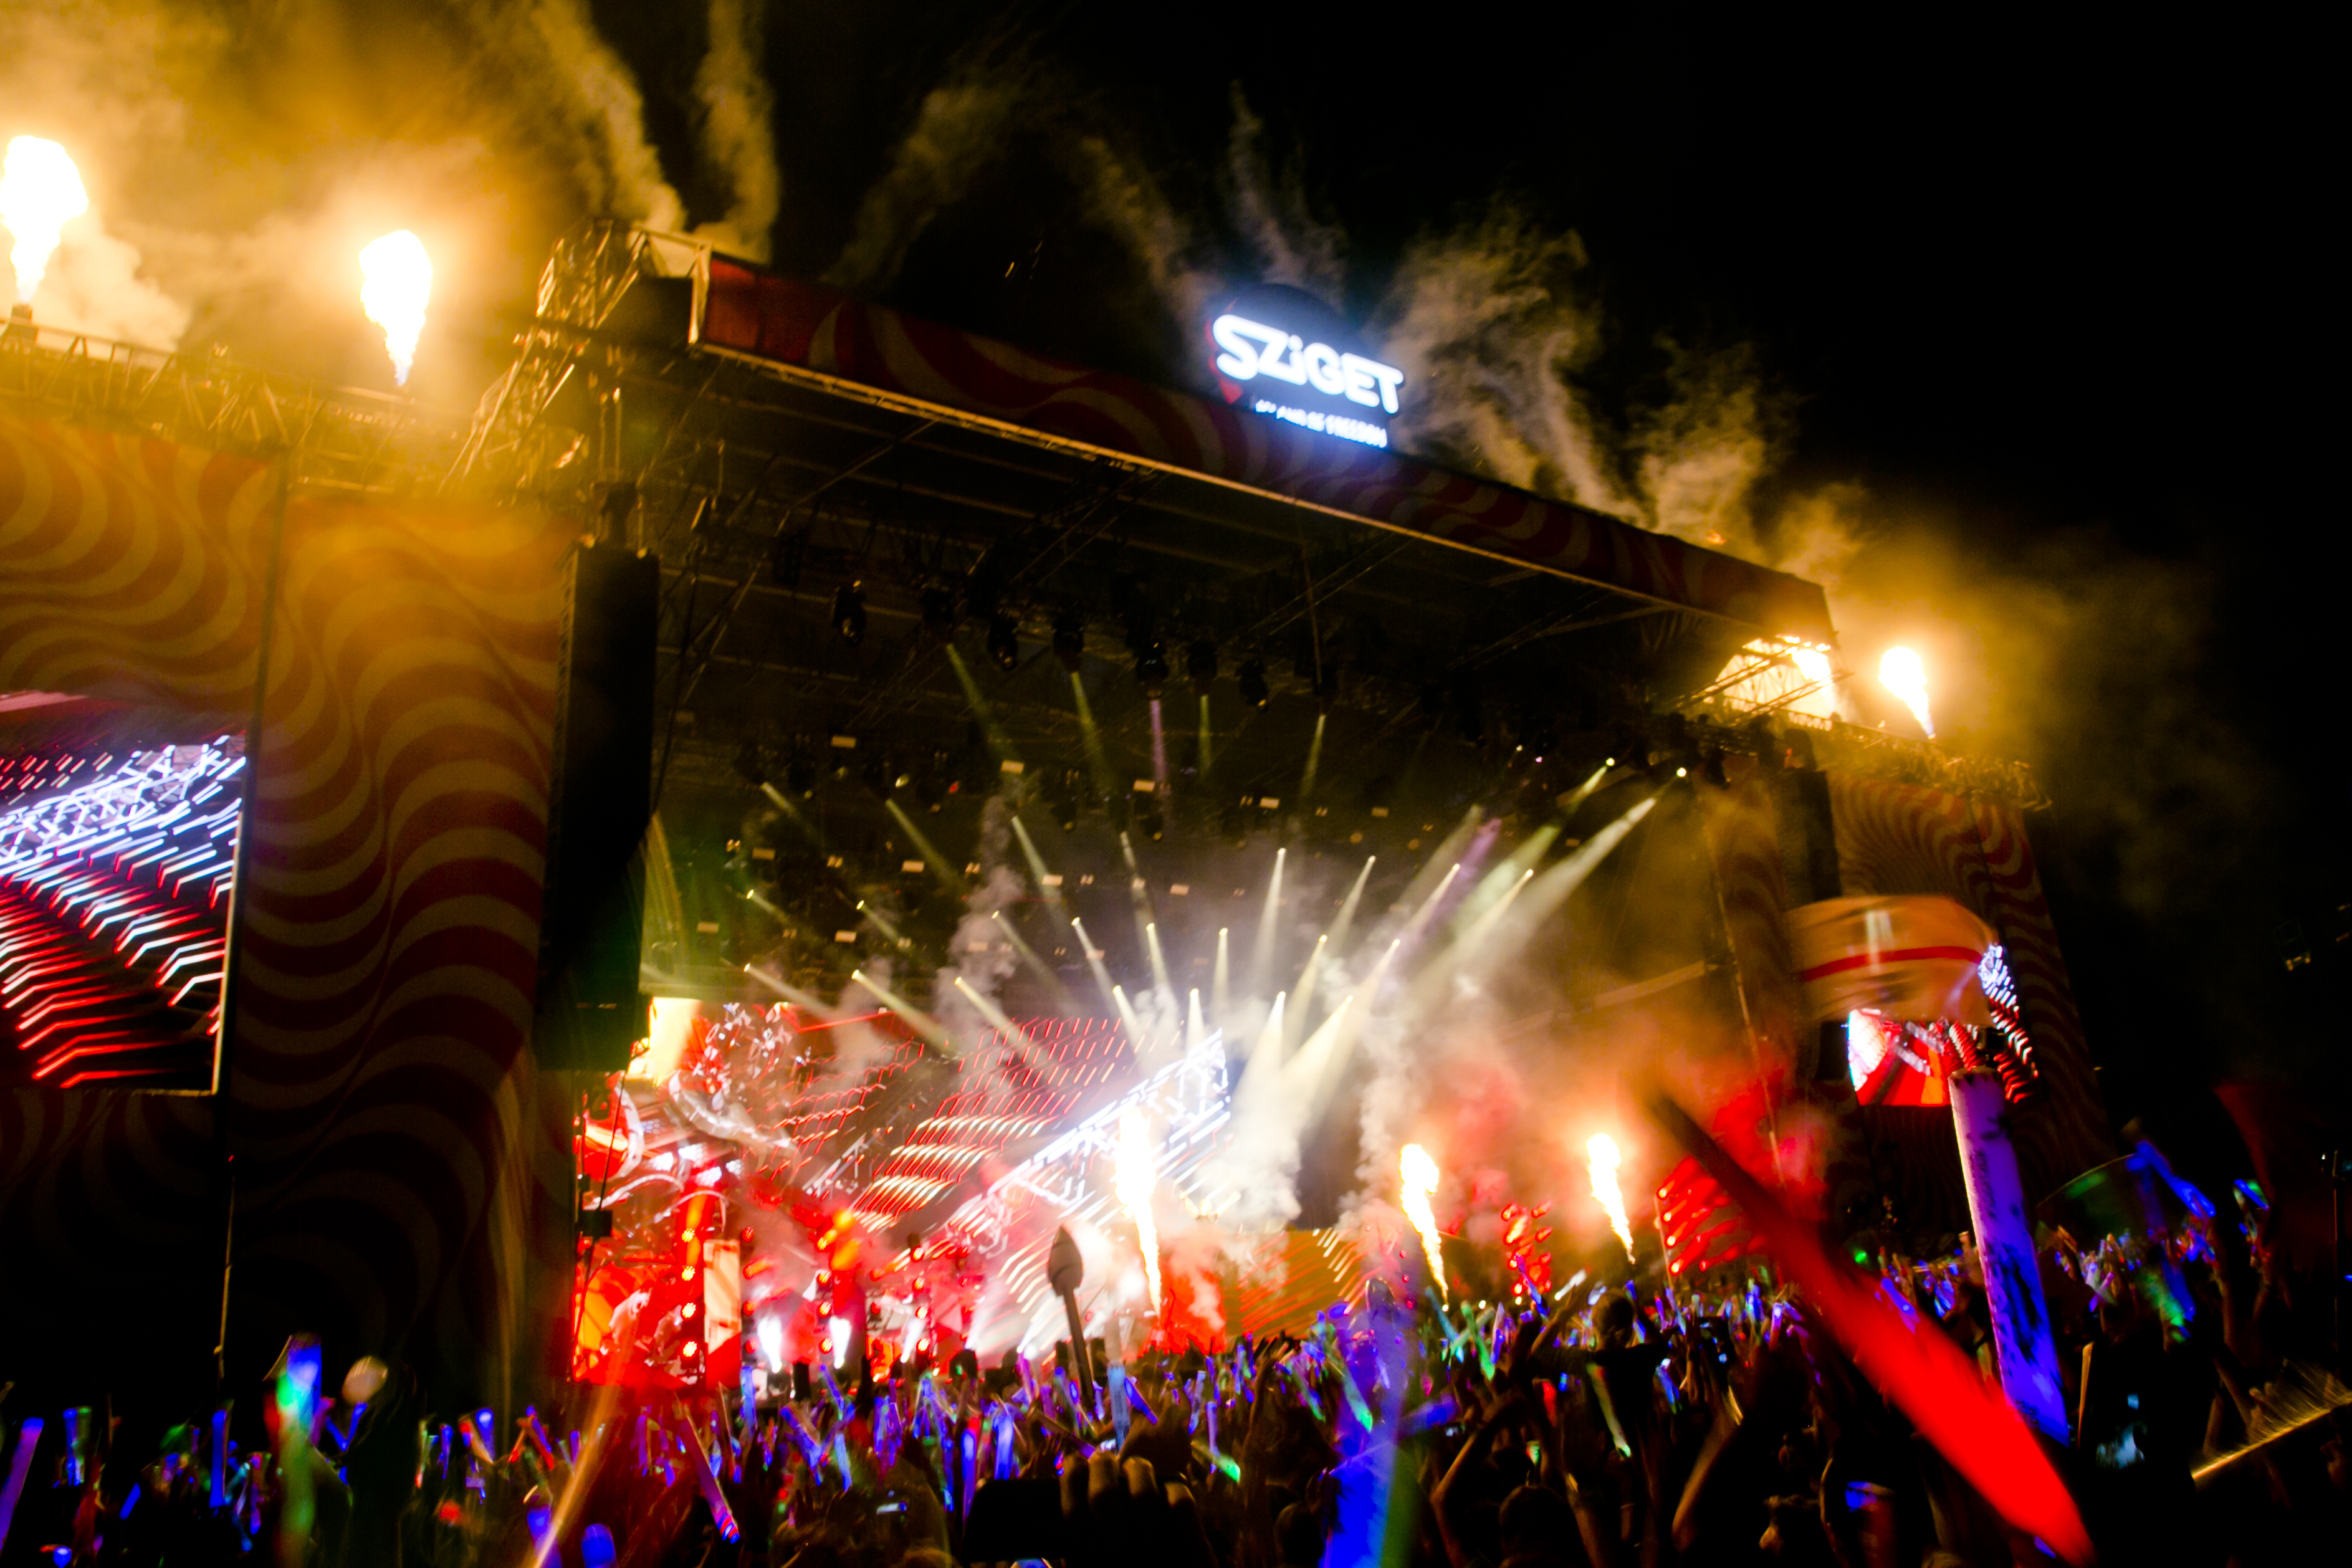 Crowd & Atmosphere at Sziget Festival, Budapest, Hungary - 16 August 2016